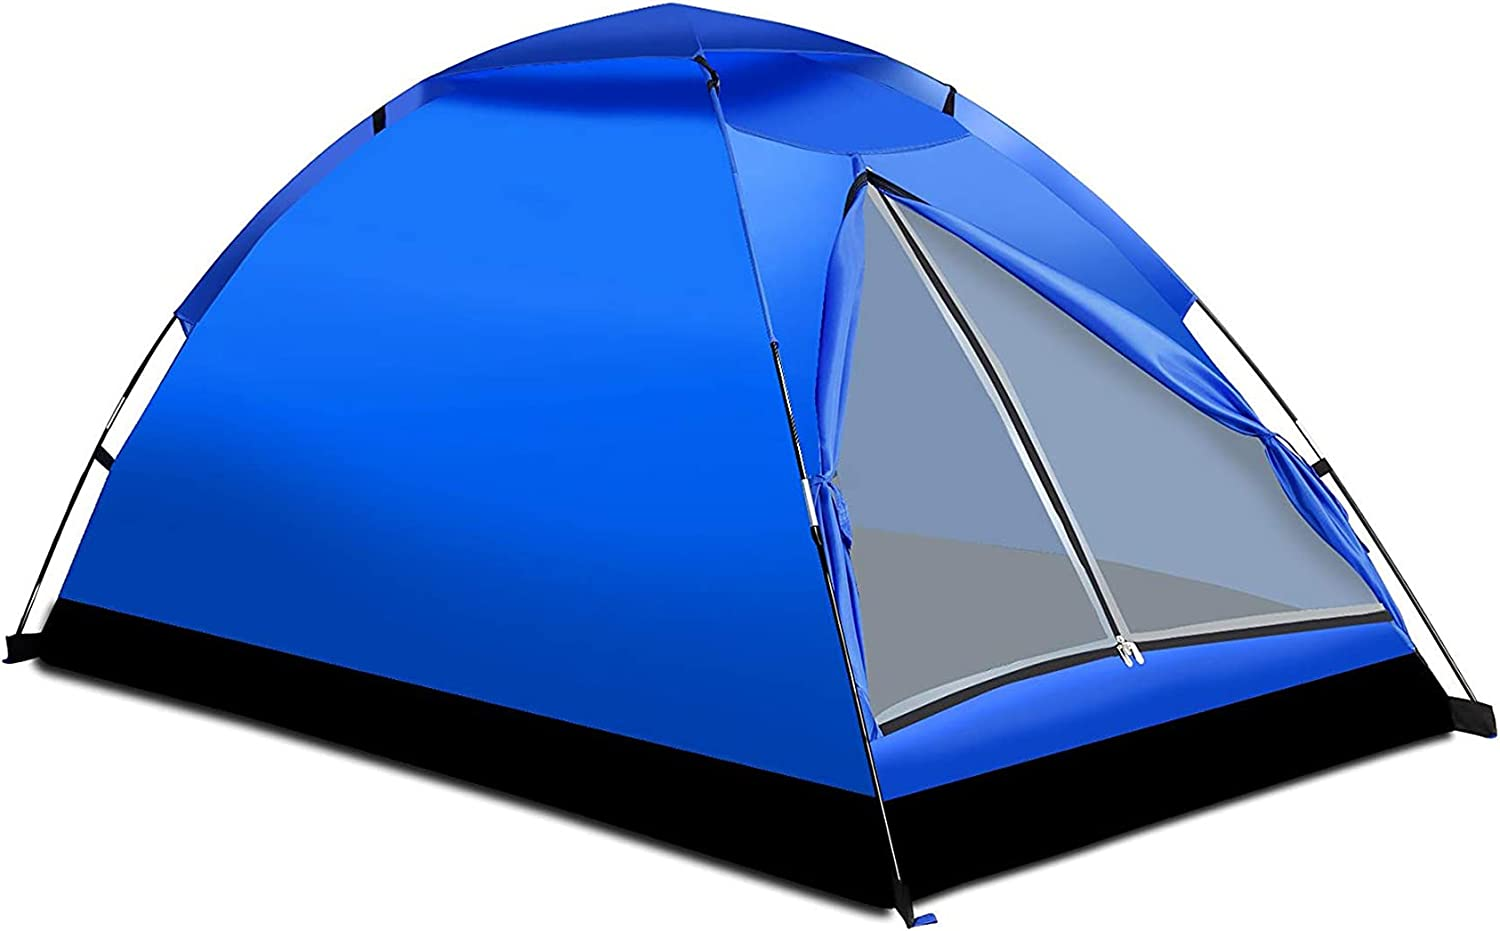 Outdoor Camping Tent Shelter Sale SALE% OFF Lightweight Kids or for Tents Dome Quality inspection